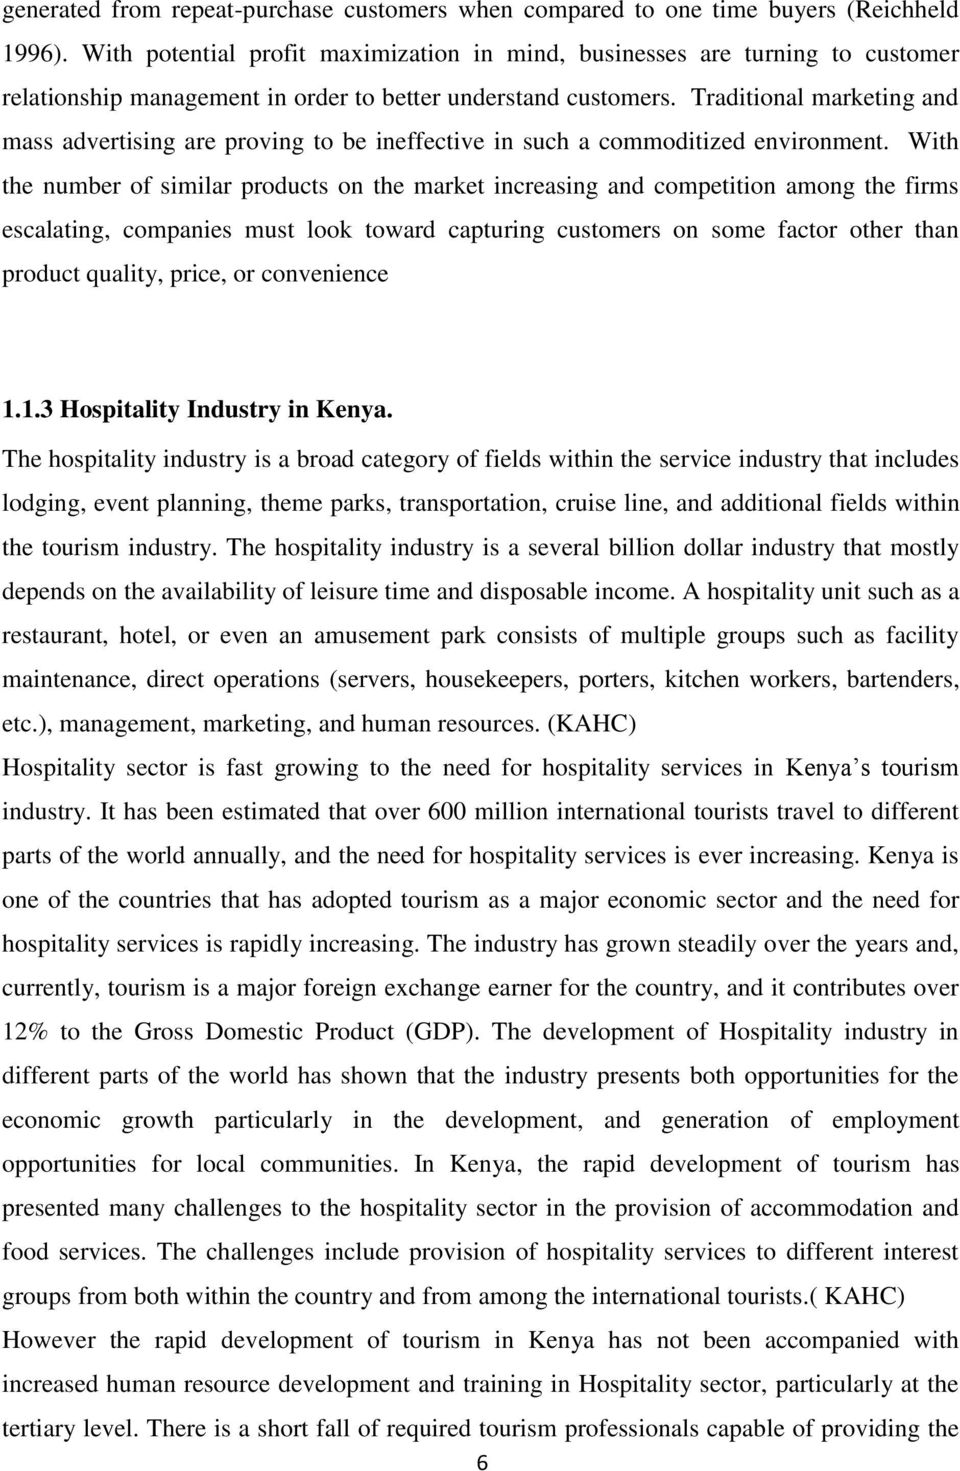 economic turndown employee human resource hospitality pdf